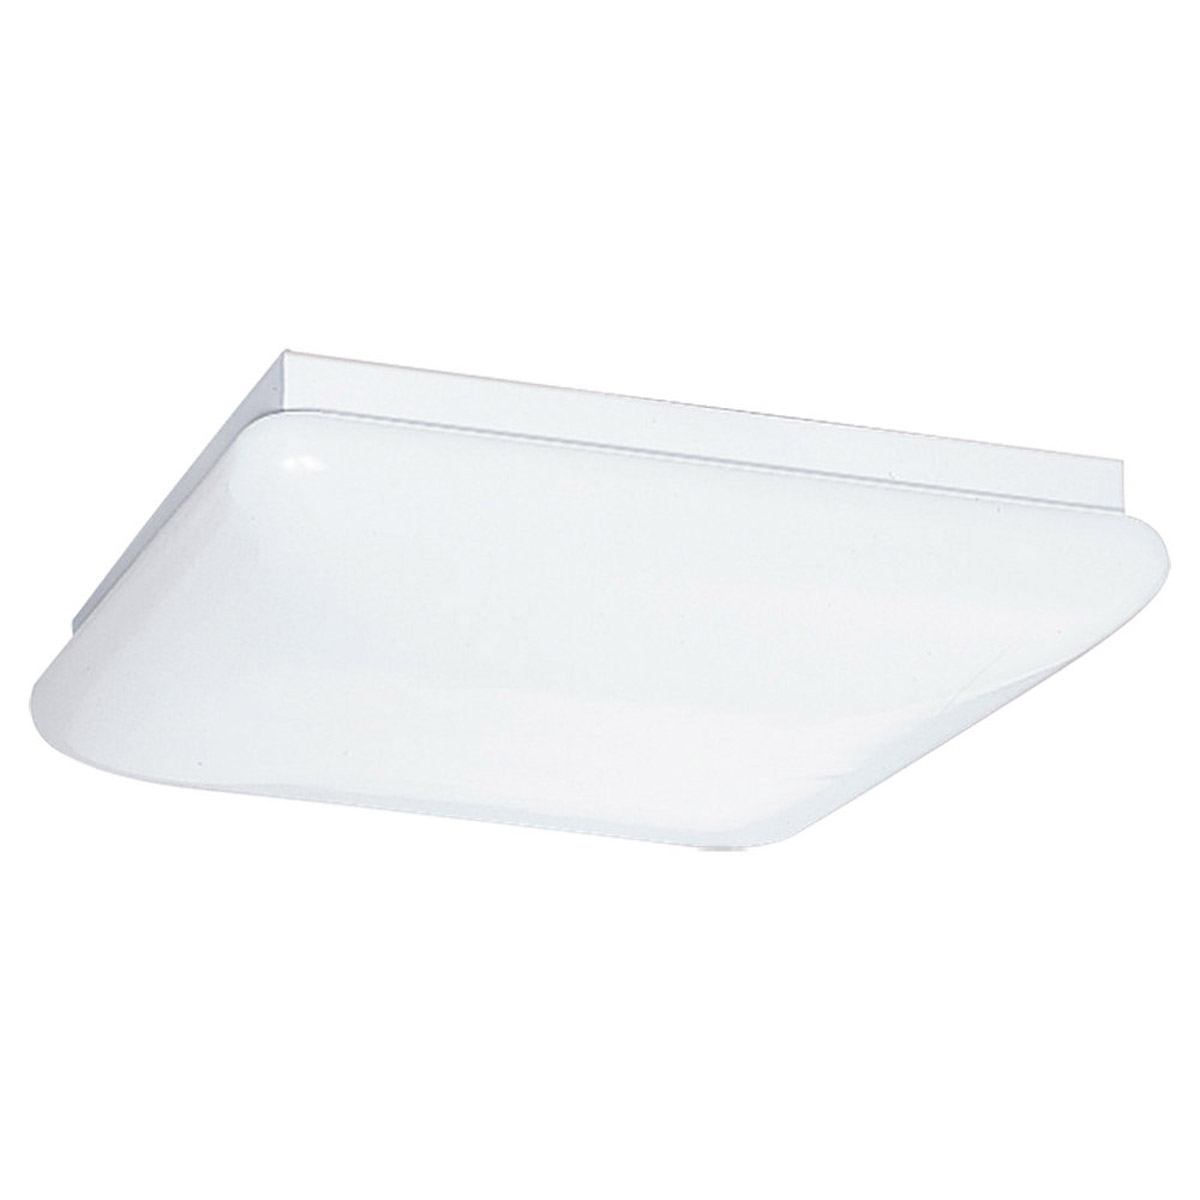 Sea Gull Lighting Signature 2 Light Fluorescent Trim Only in White Plastic 5911-68